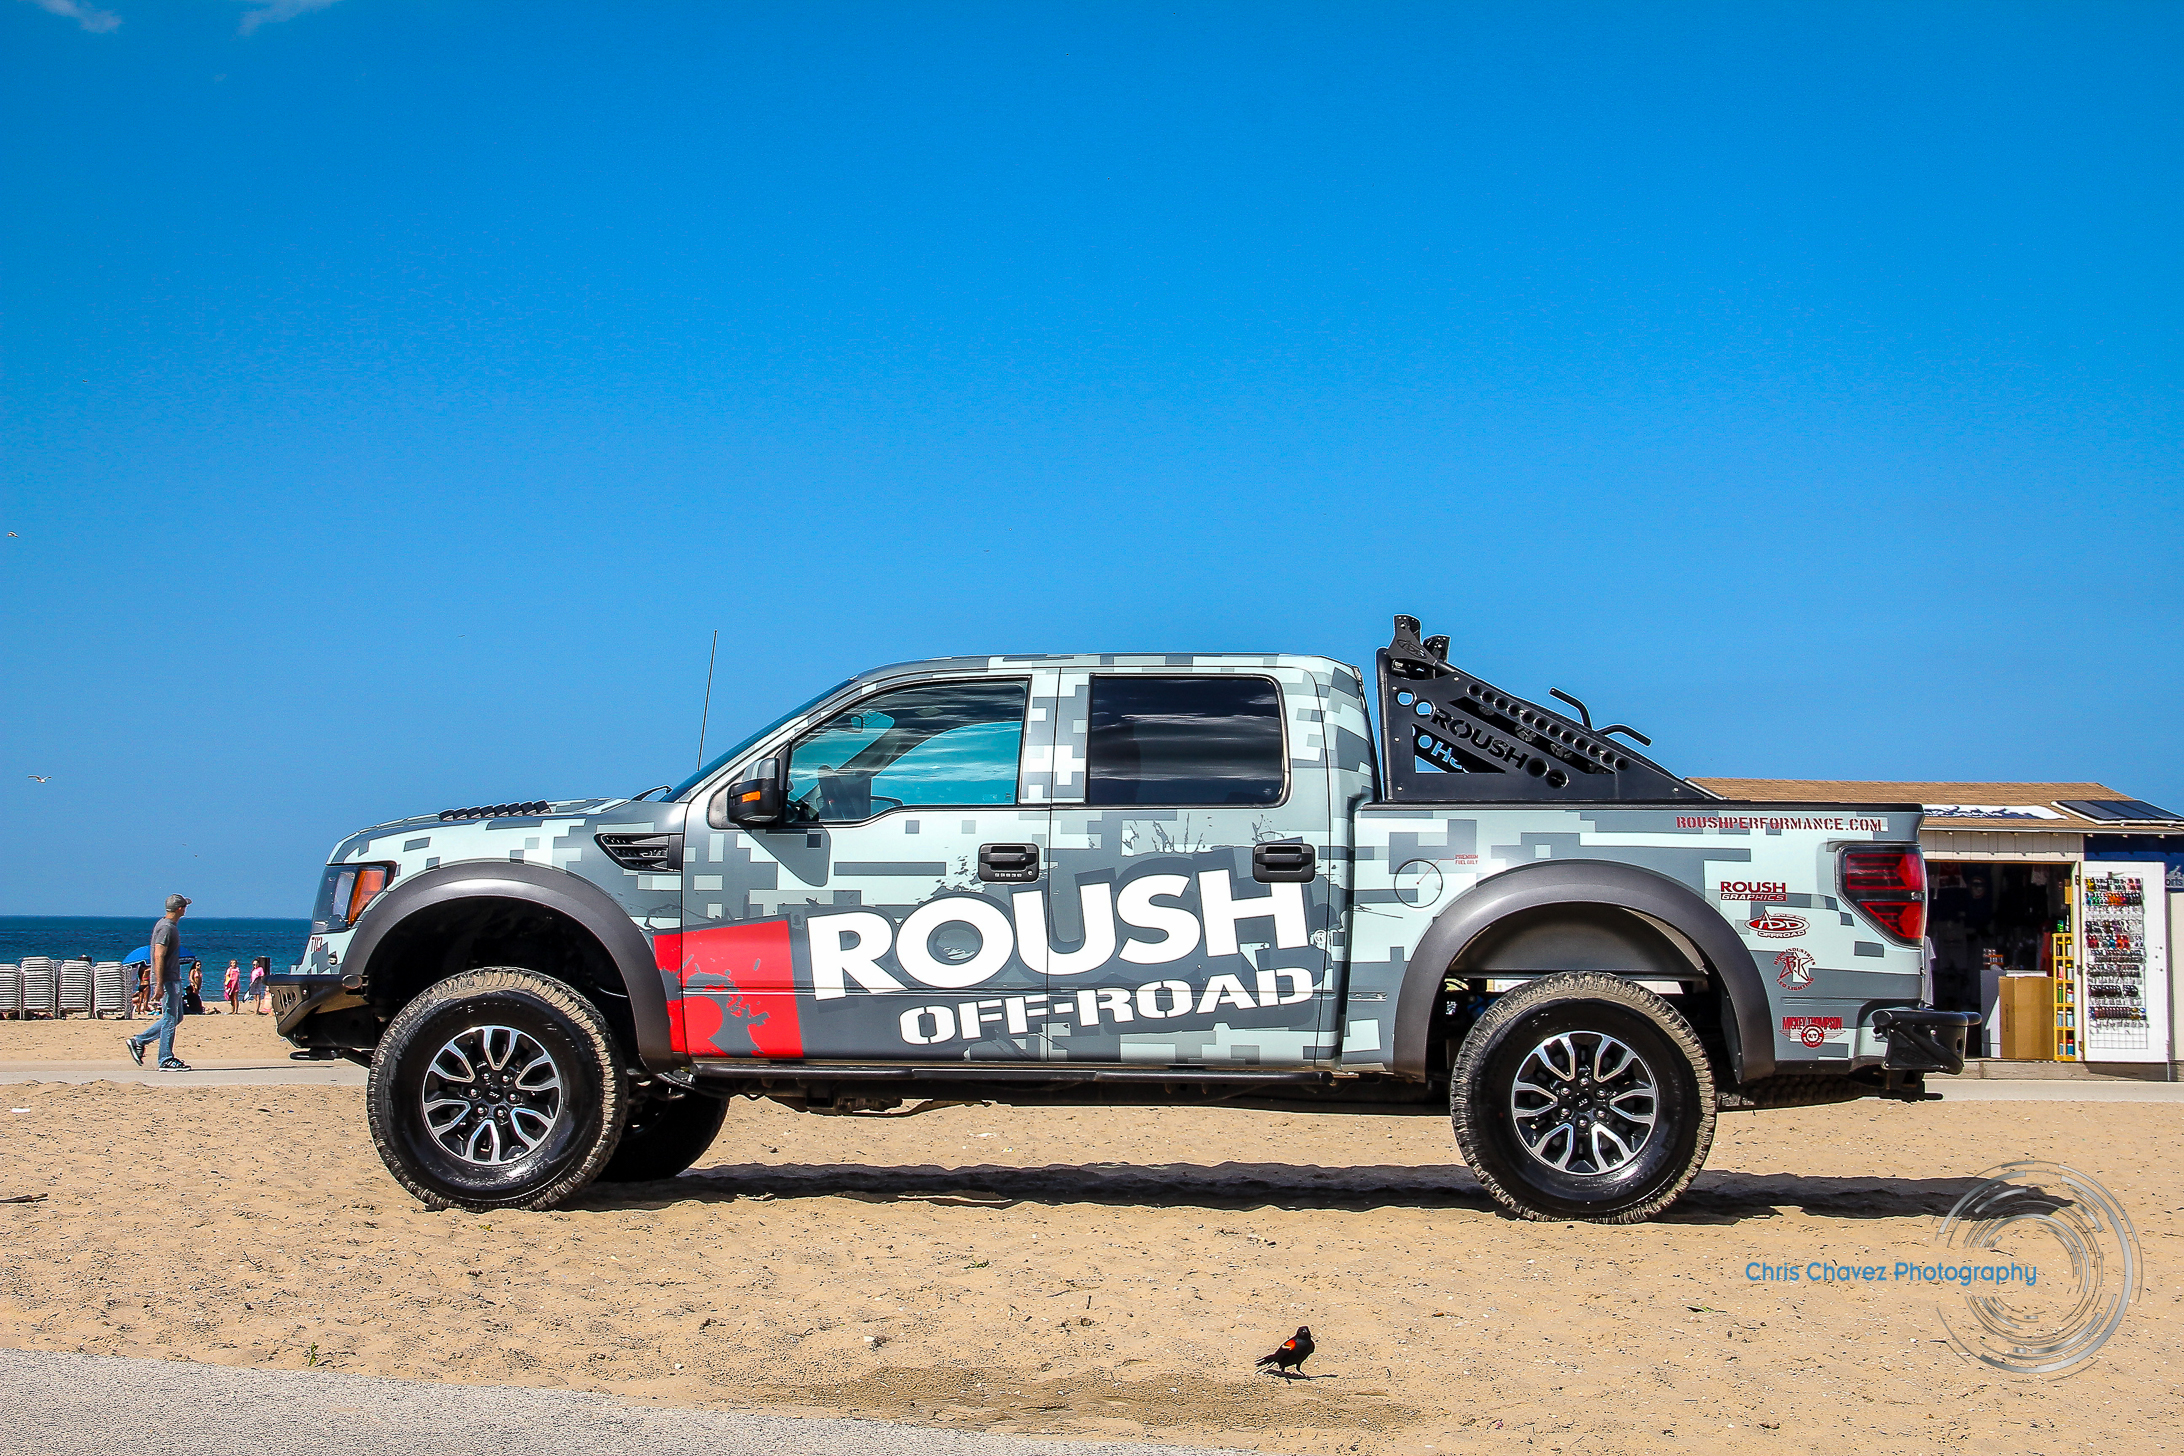 Roush.f150.wm-6.jpg